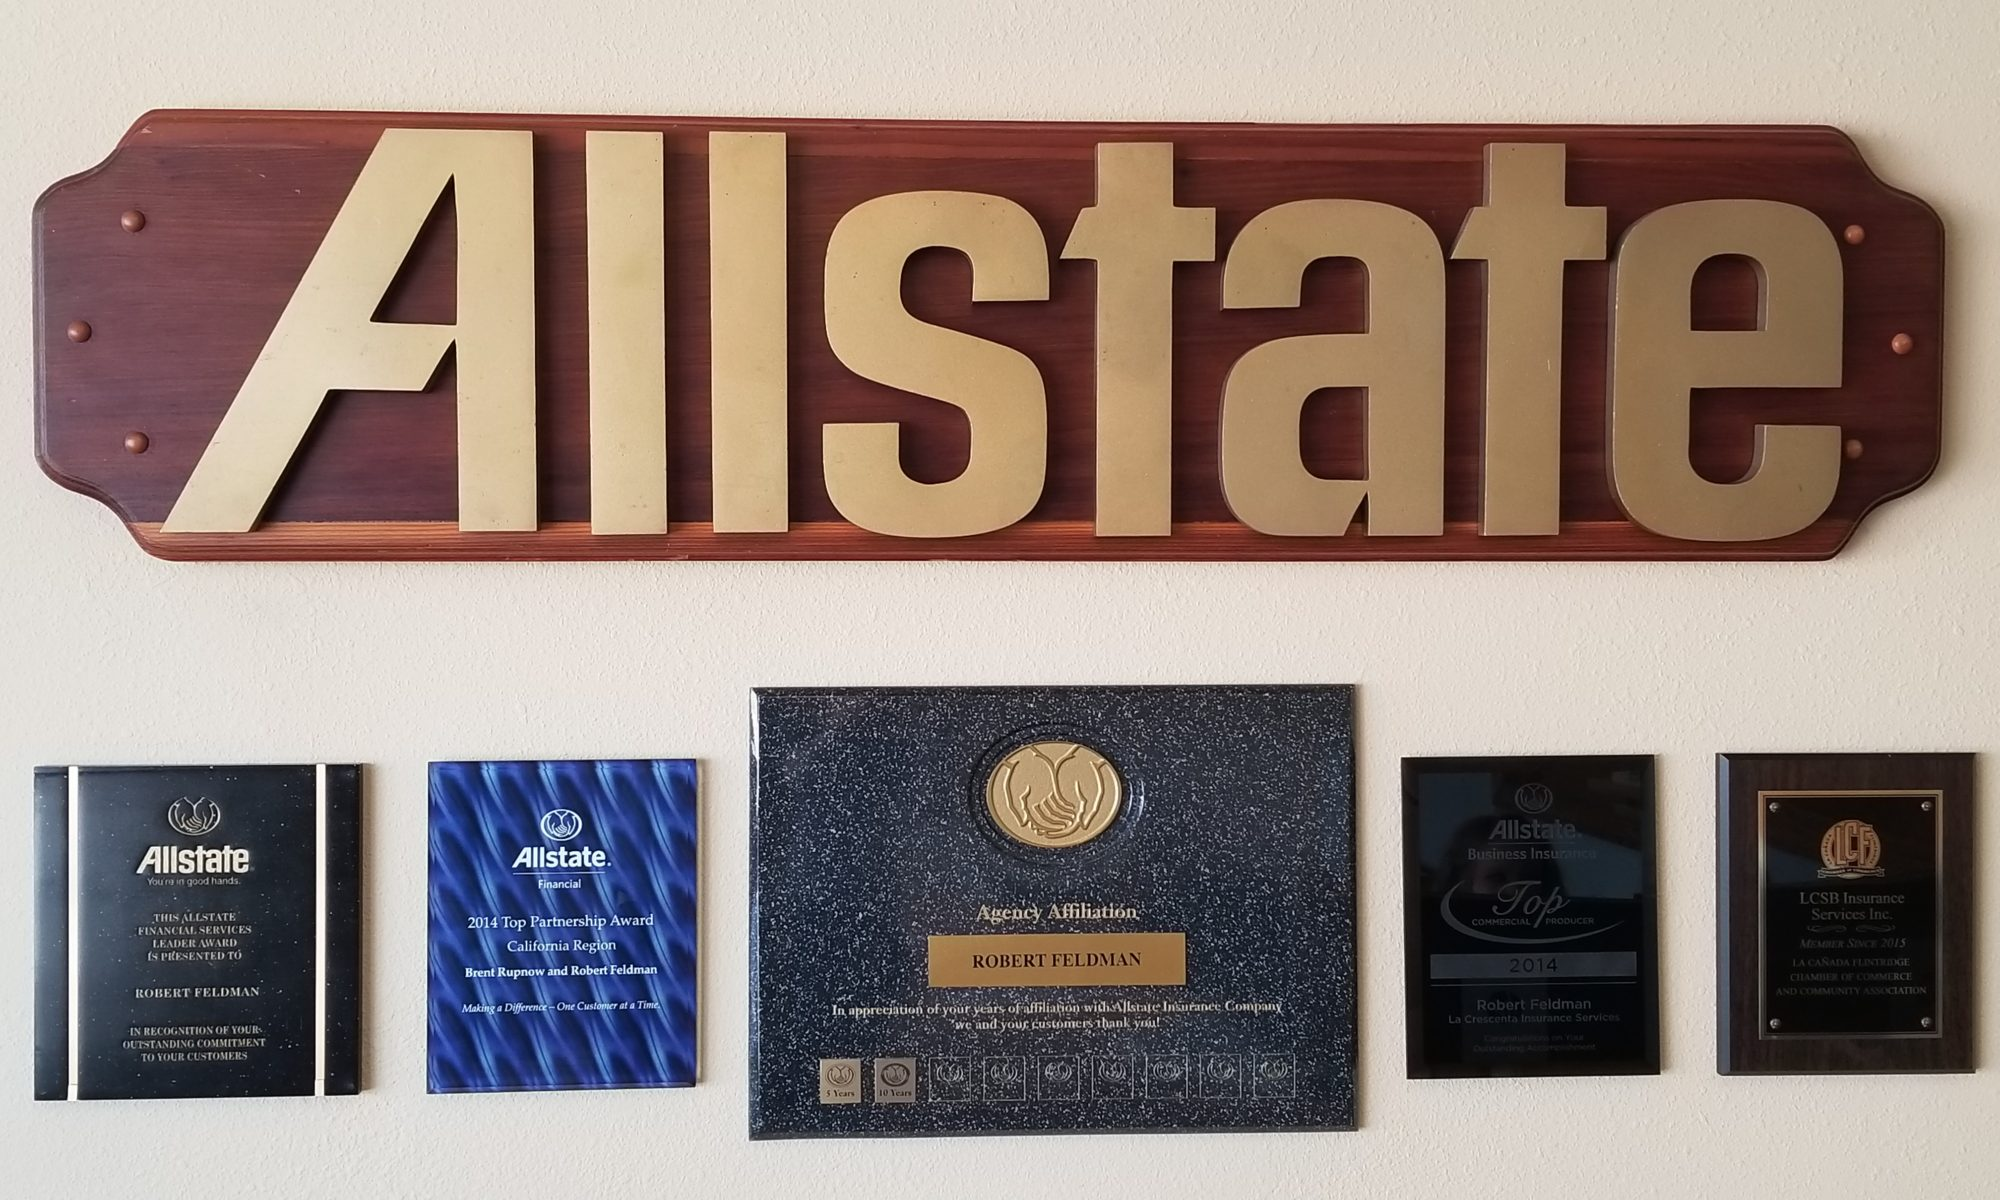 Local Entrepreneur Recognized by Allstate for Serving Other Businesses